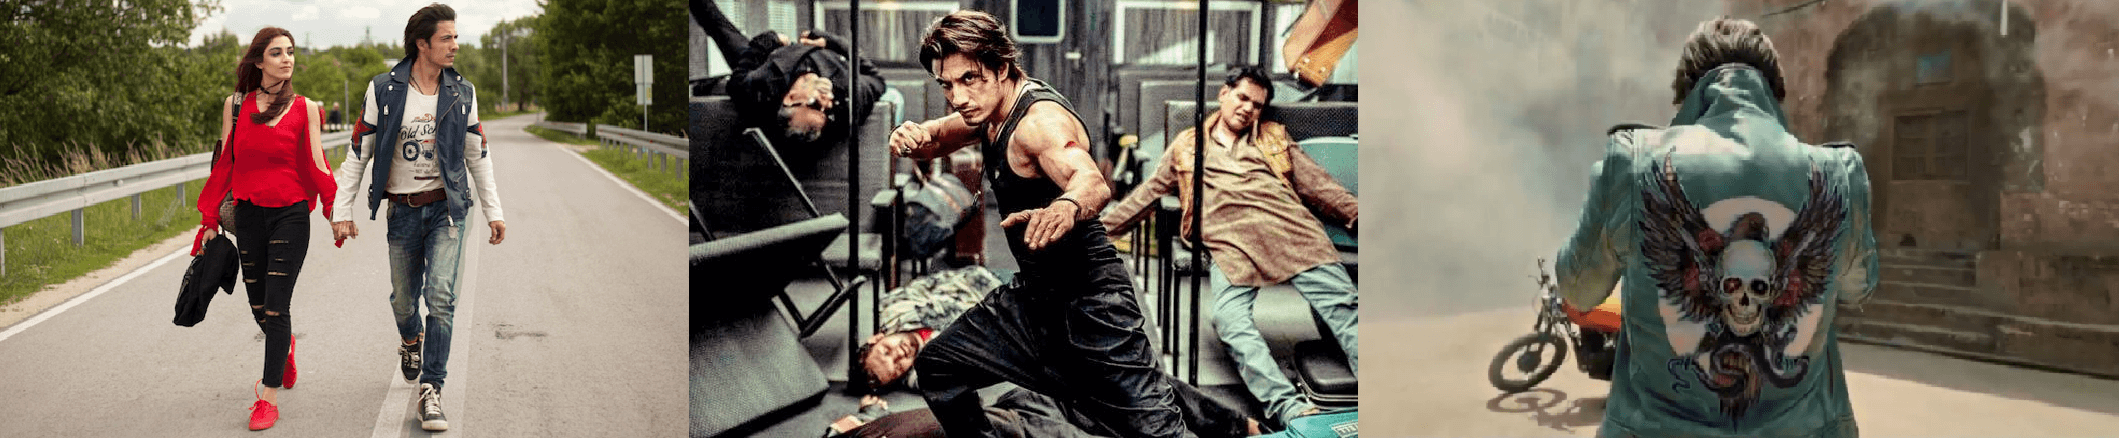 Teefa In Trouble 2018-posters